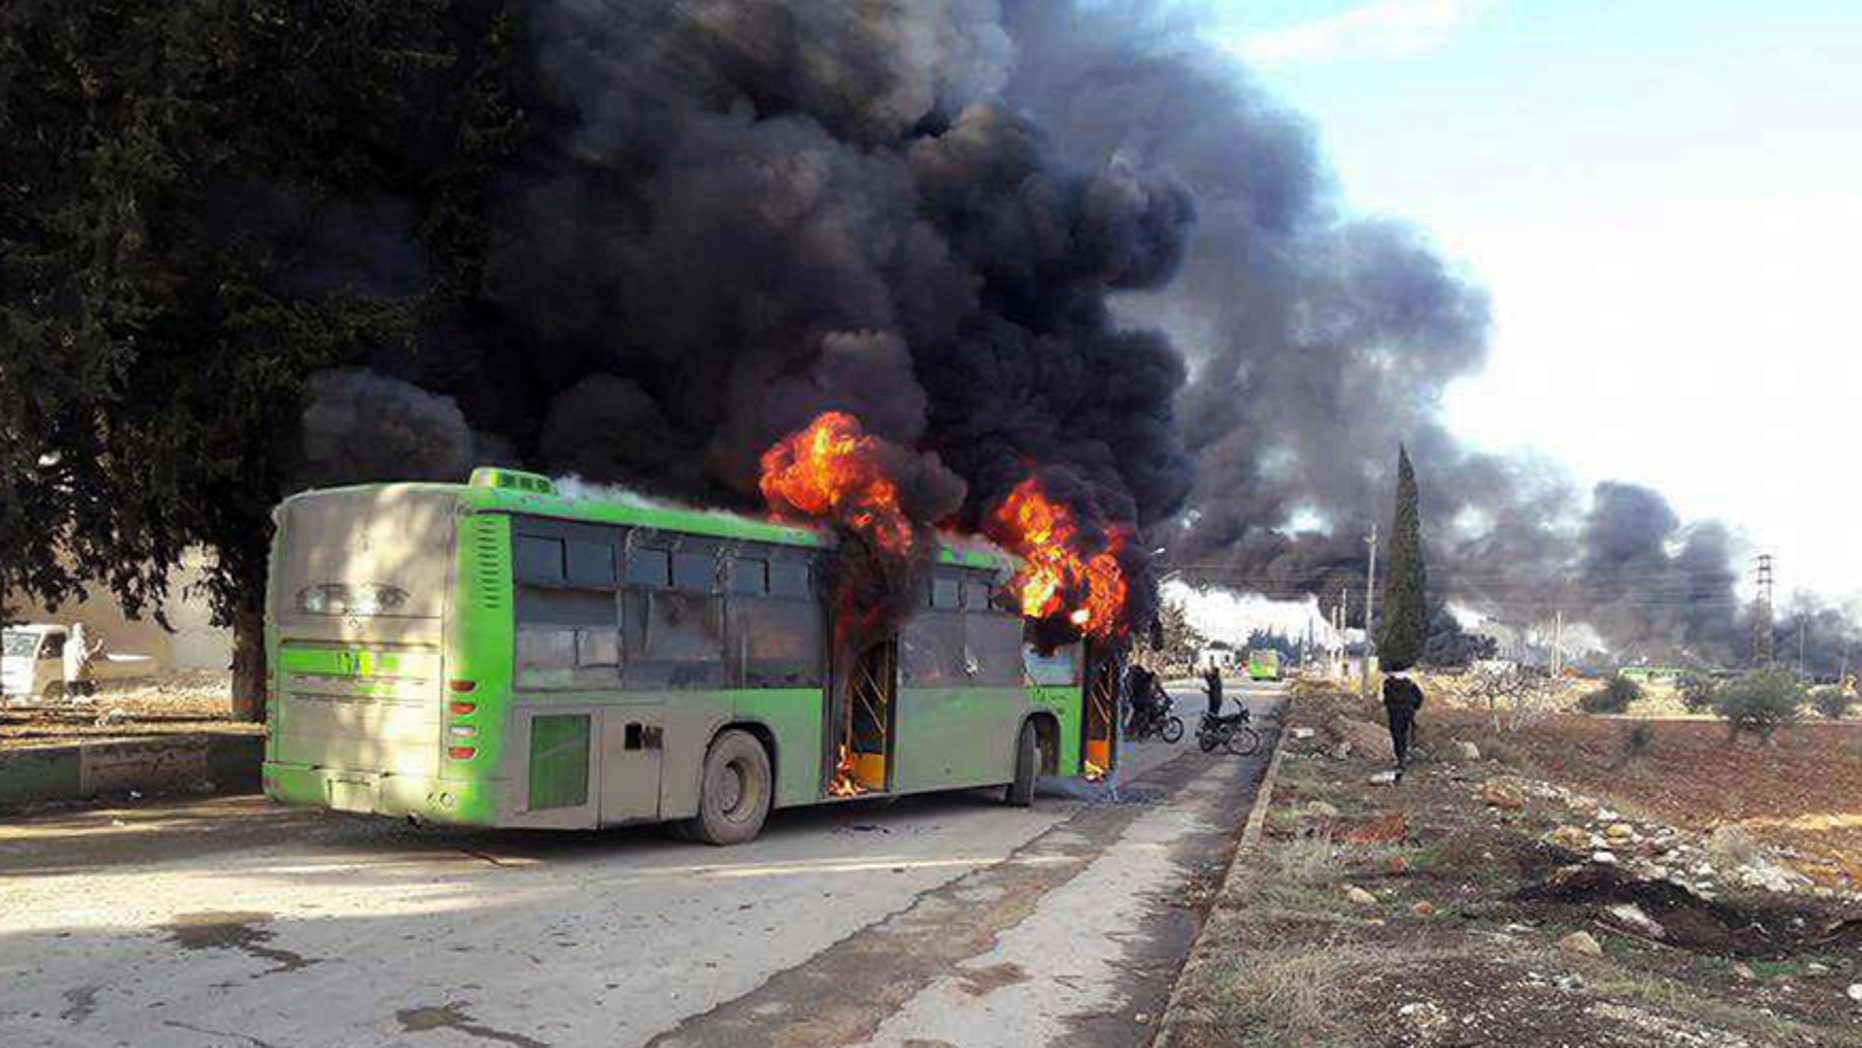 In this photo released by the Syrian official news agency SANA, smoke rises in green government buses, in Idlib province, Syria, Sunday, Dec. 18, 2016. Activists said, militants have burned at least five buses assigned to evacuate wounded and sick people from two villages in northern Syria. The incident could scuttle a wider deal that encompasses the evacuation of thousands of trapped rebel fighters and civilians from the last opposition foothold in east Aleppo. (SANA via AP)